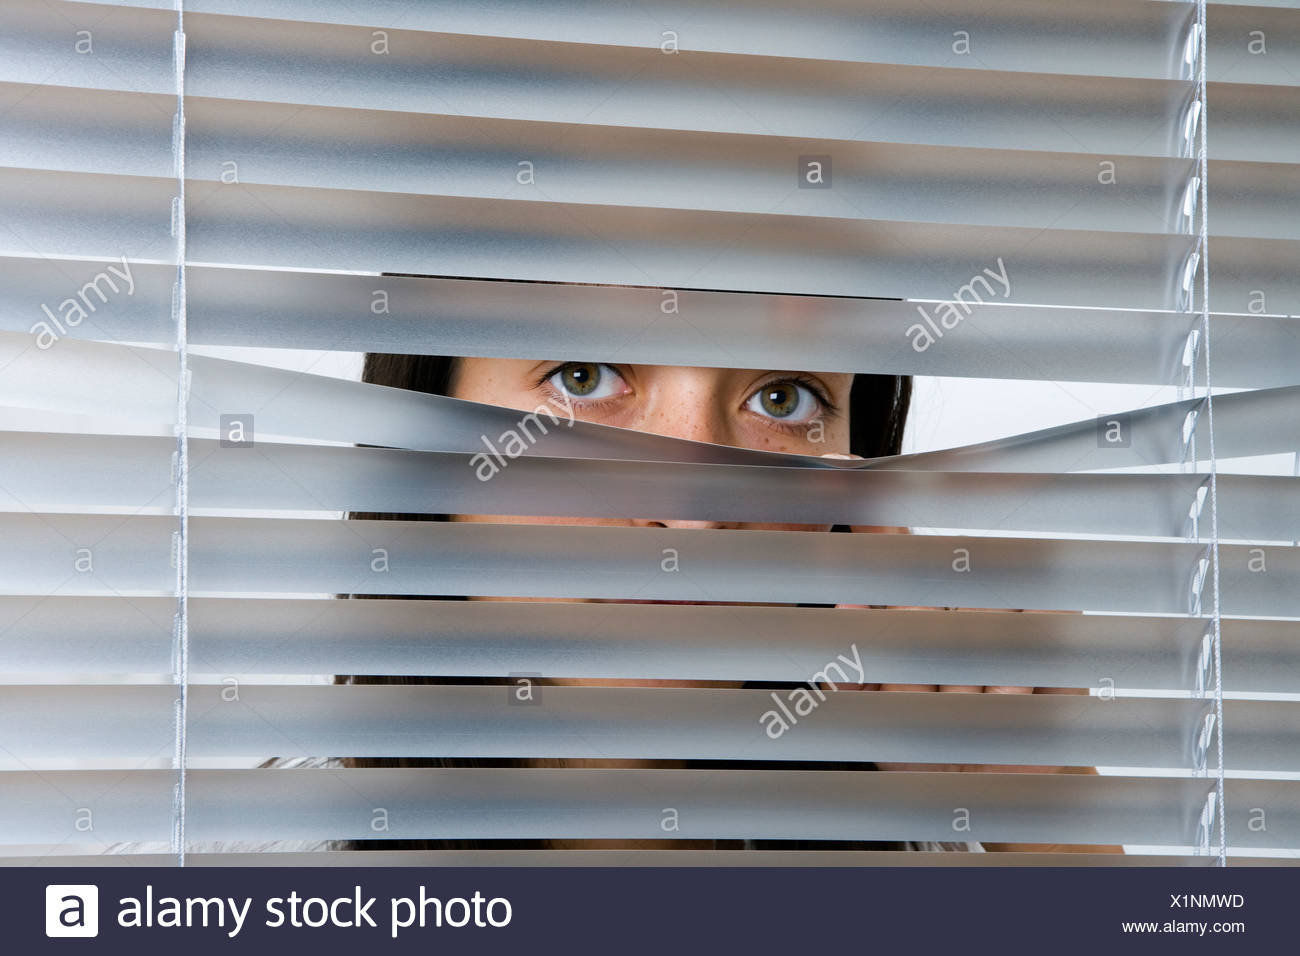 A young woman peering through Venetian blinds - Stock Image